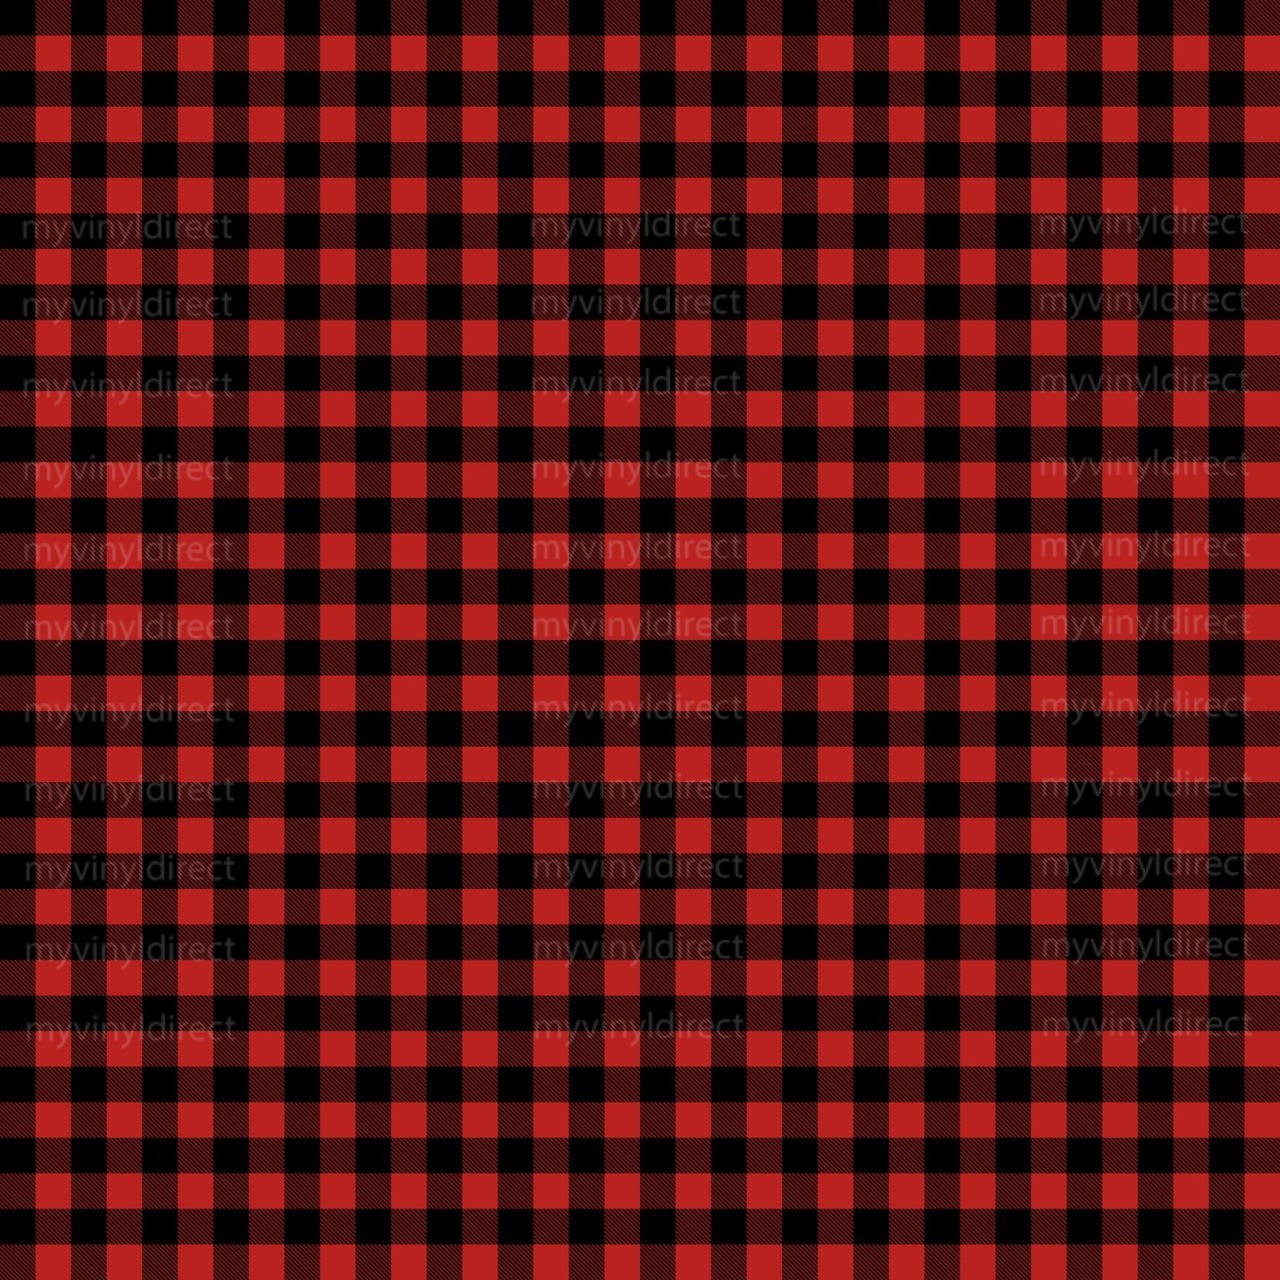 Shop for buffalo plaid curtains online at Target. Free shipping on purchases over $35 and save 5% every day with your Target REDcard.